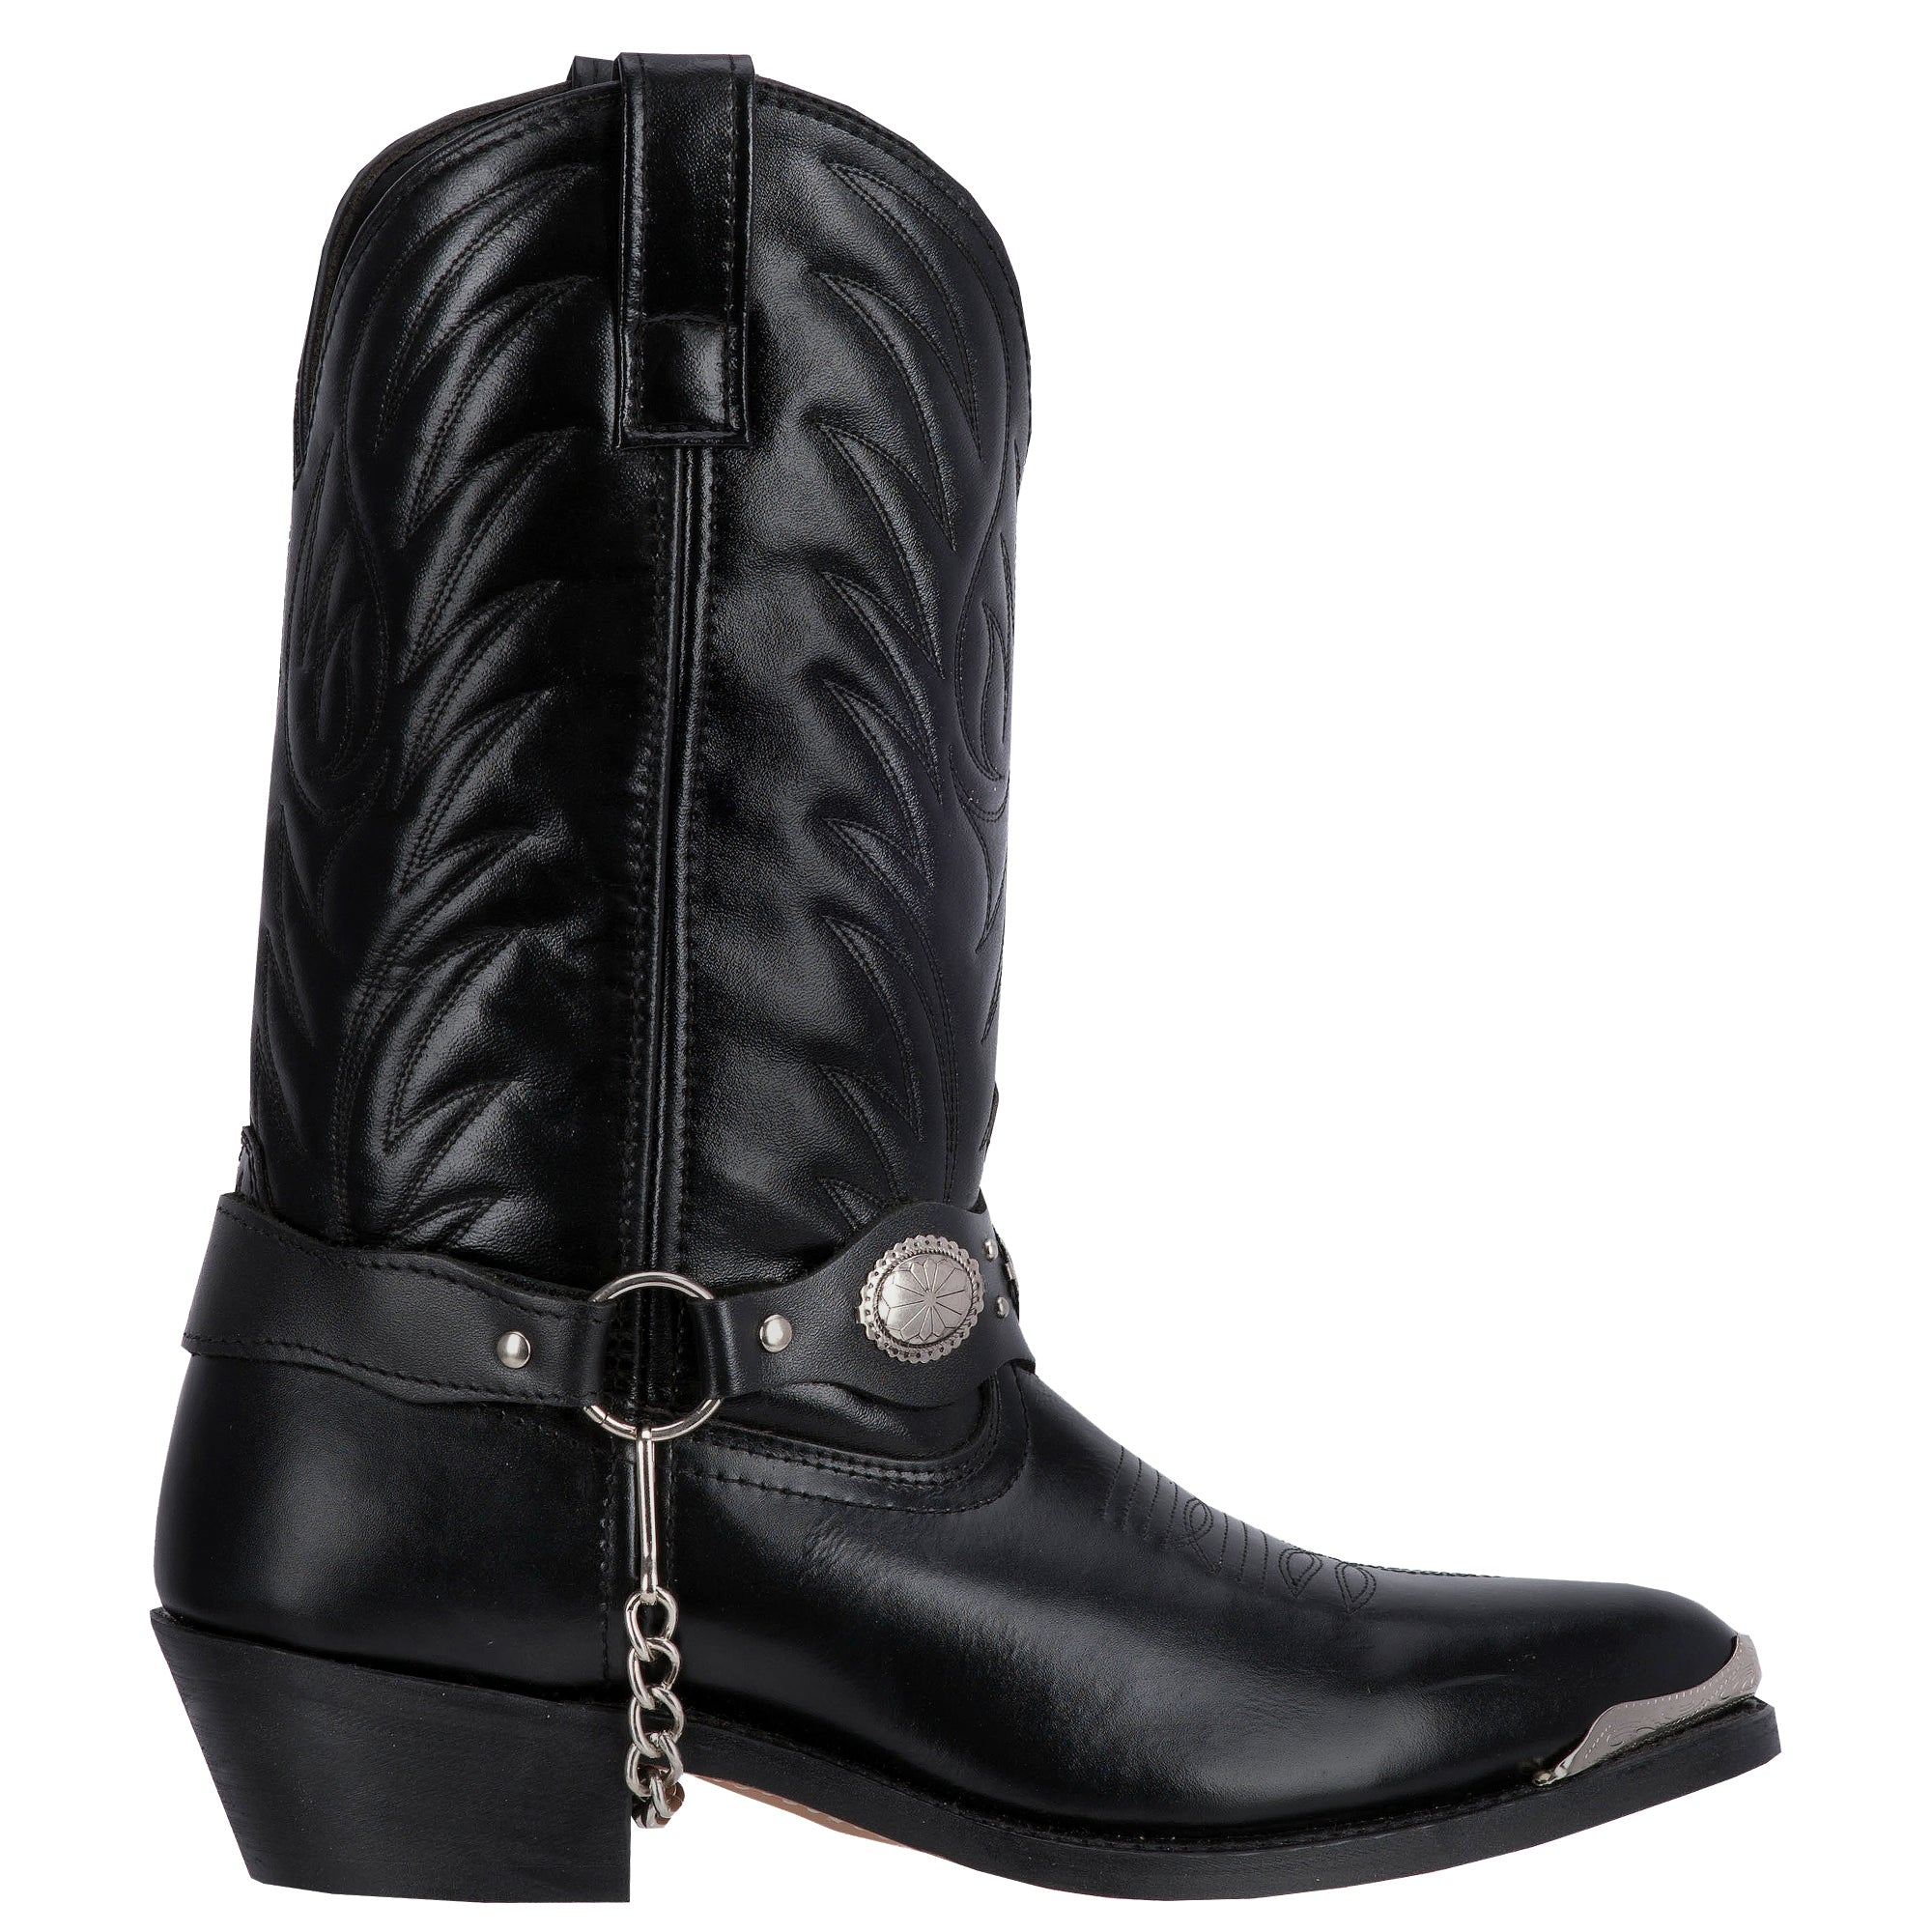 TALLAHASSEE BOOT 15778950185002